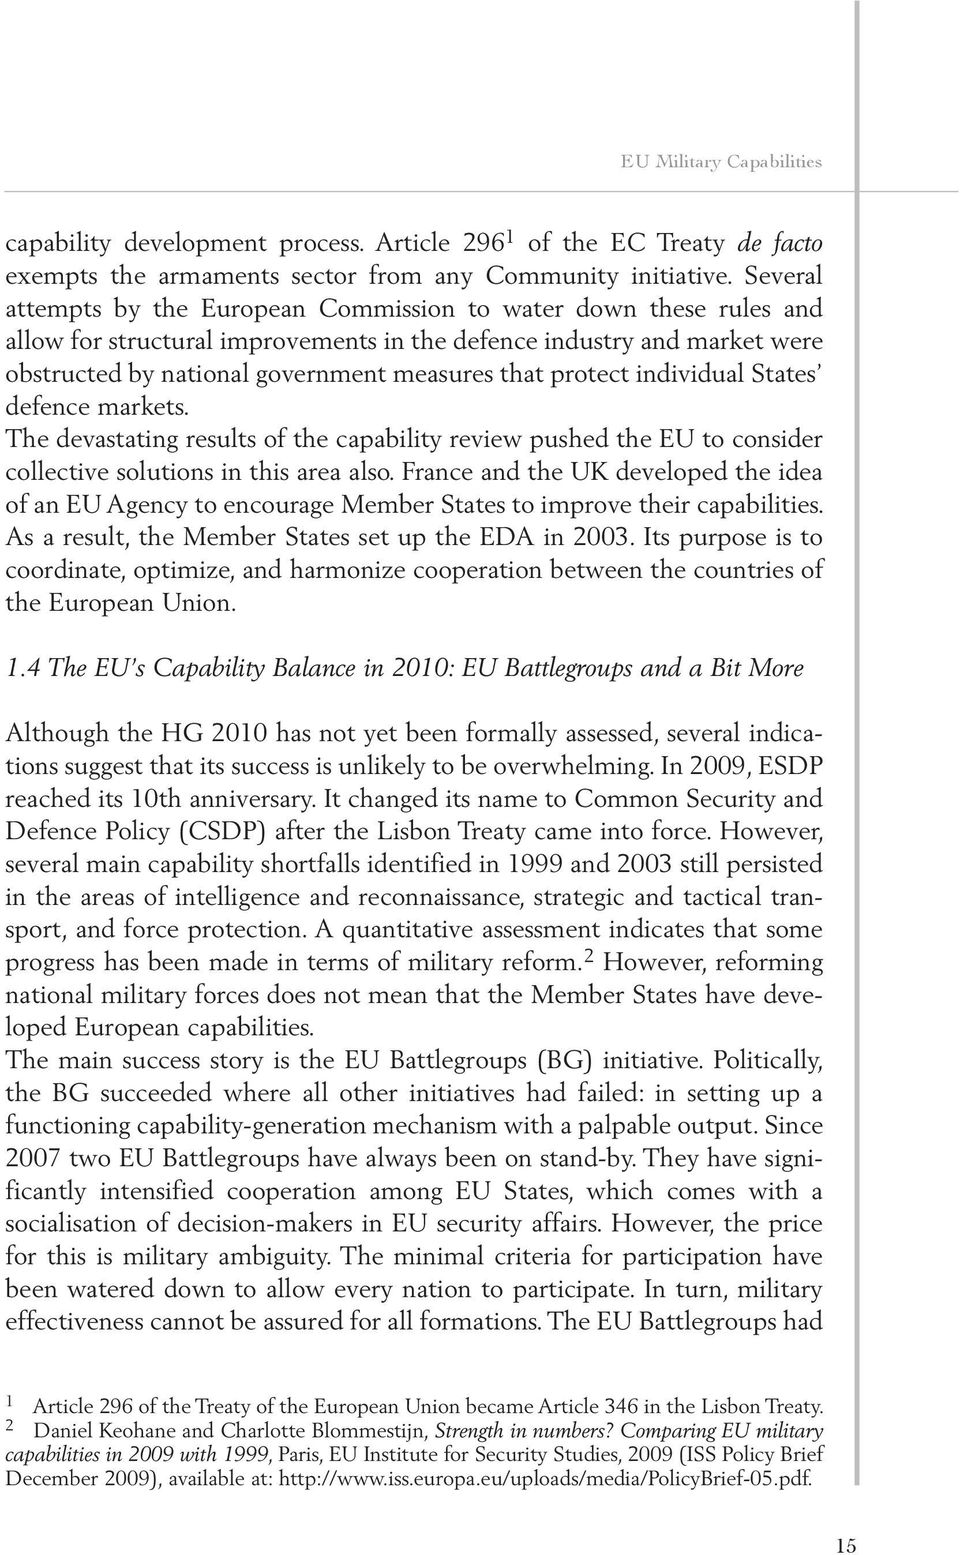 protect individual States defence markets. The devastating results of the capability review pushed the EU to consider collective solutions in this area also.